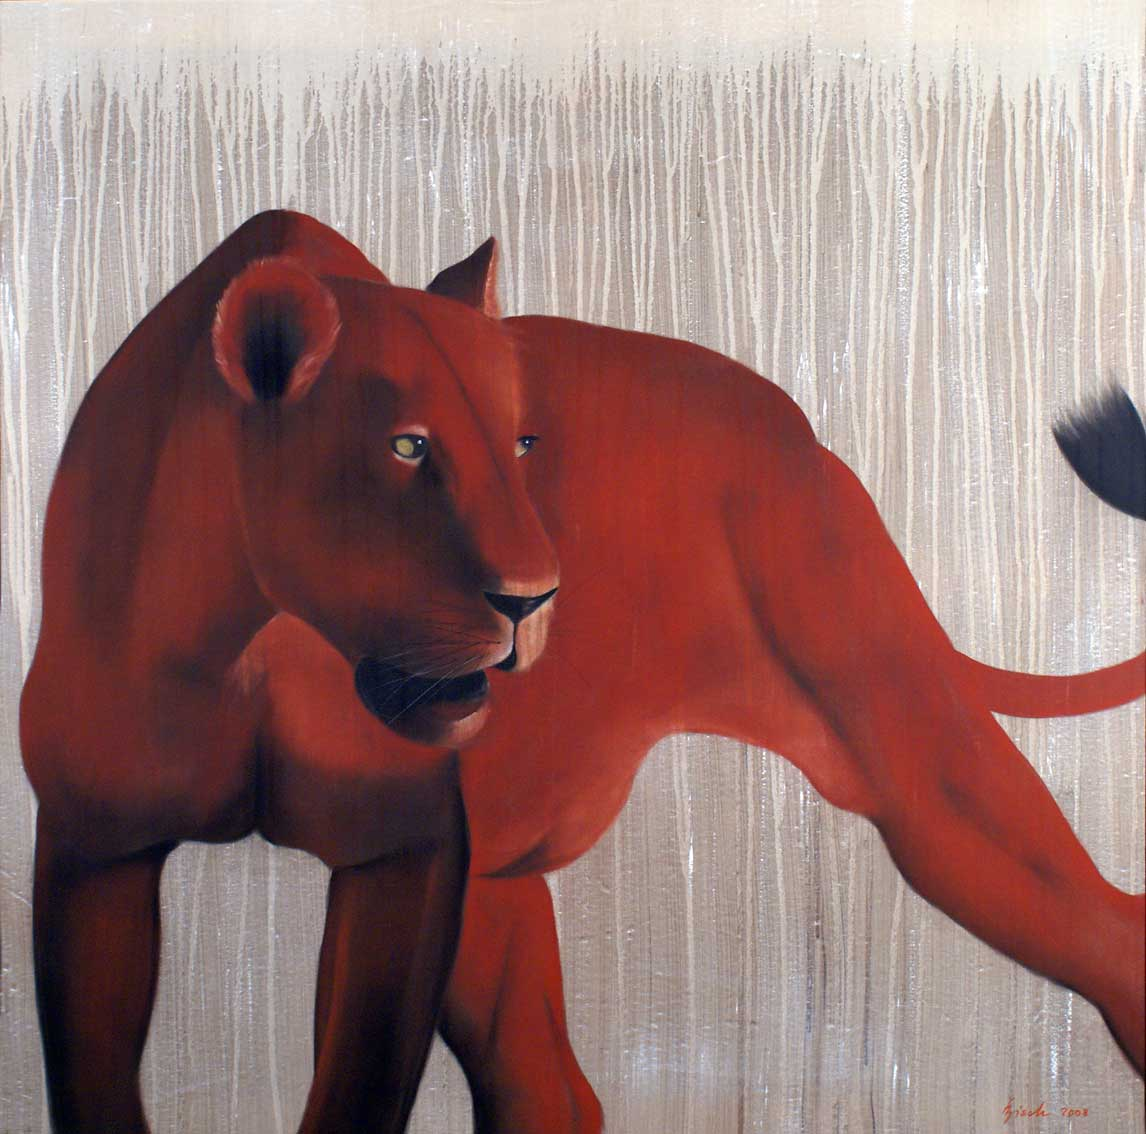 RED LIONESS divers Thierry Bisch painter animals painting art decoration hotel design interior luxury nature biodiversity conservation